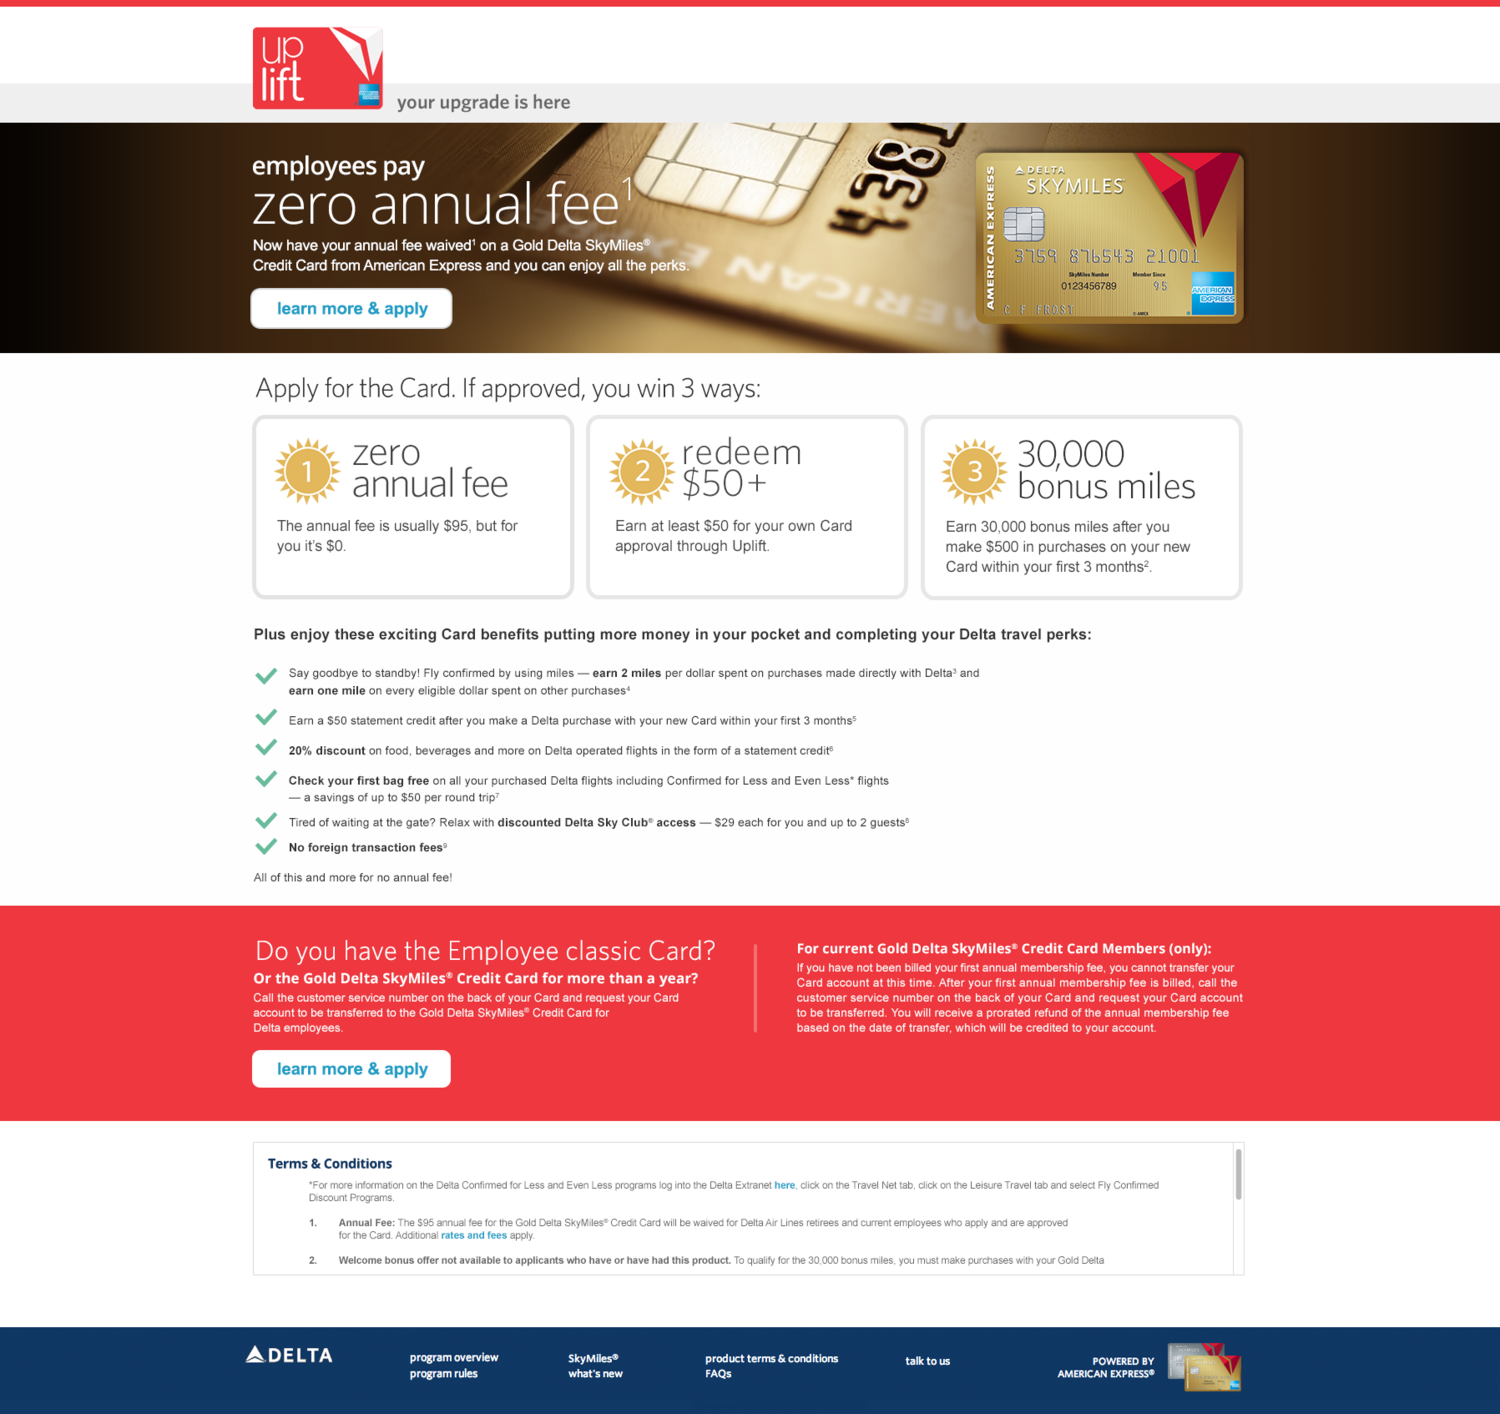 Delta Gold Customer Service - All The Best Gold In 2018